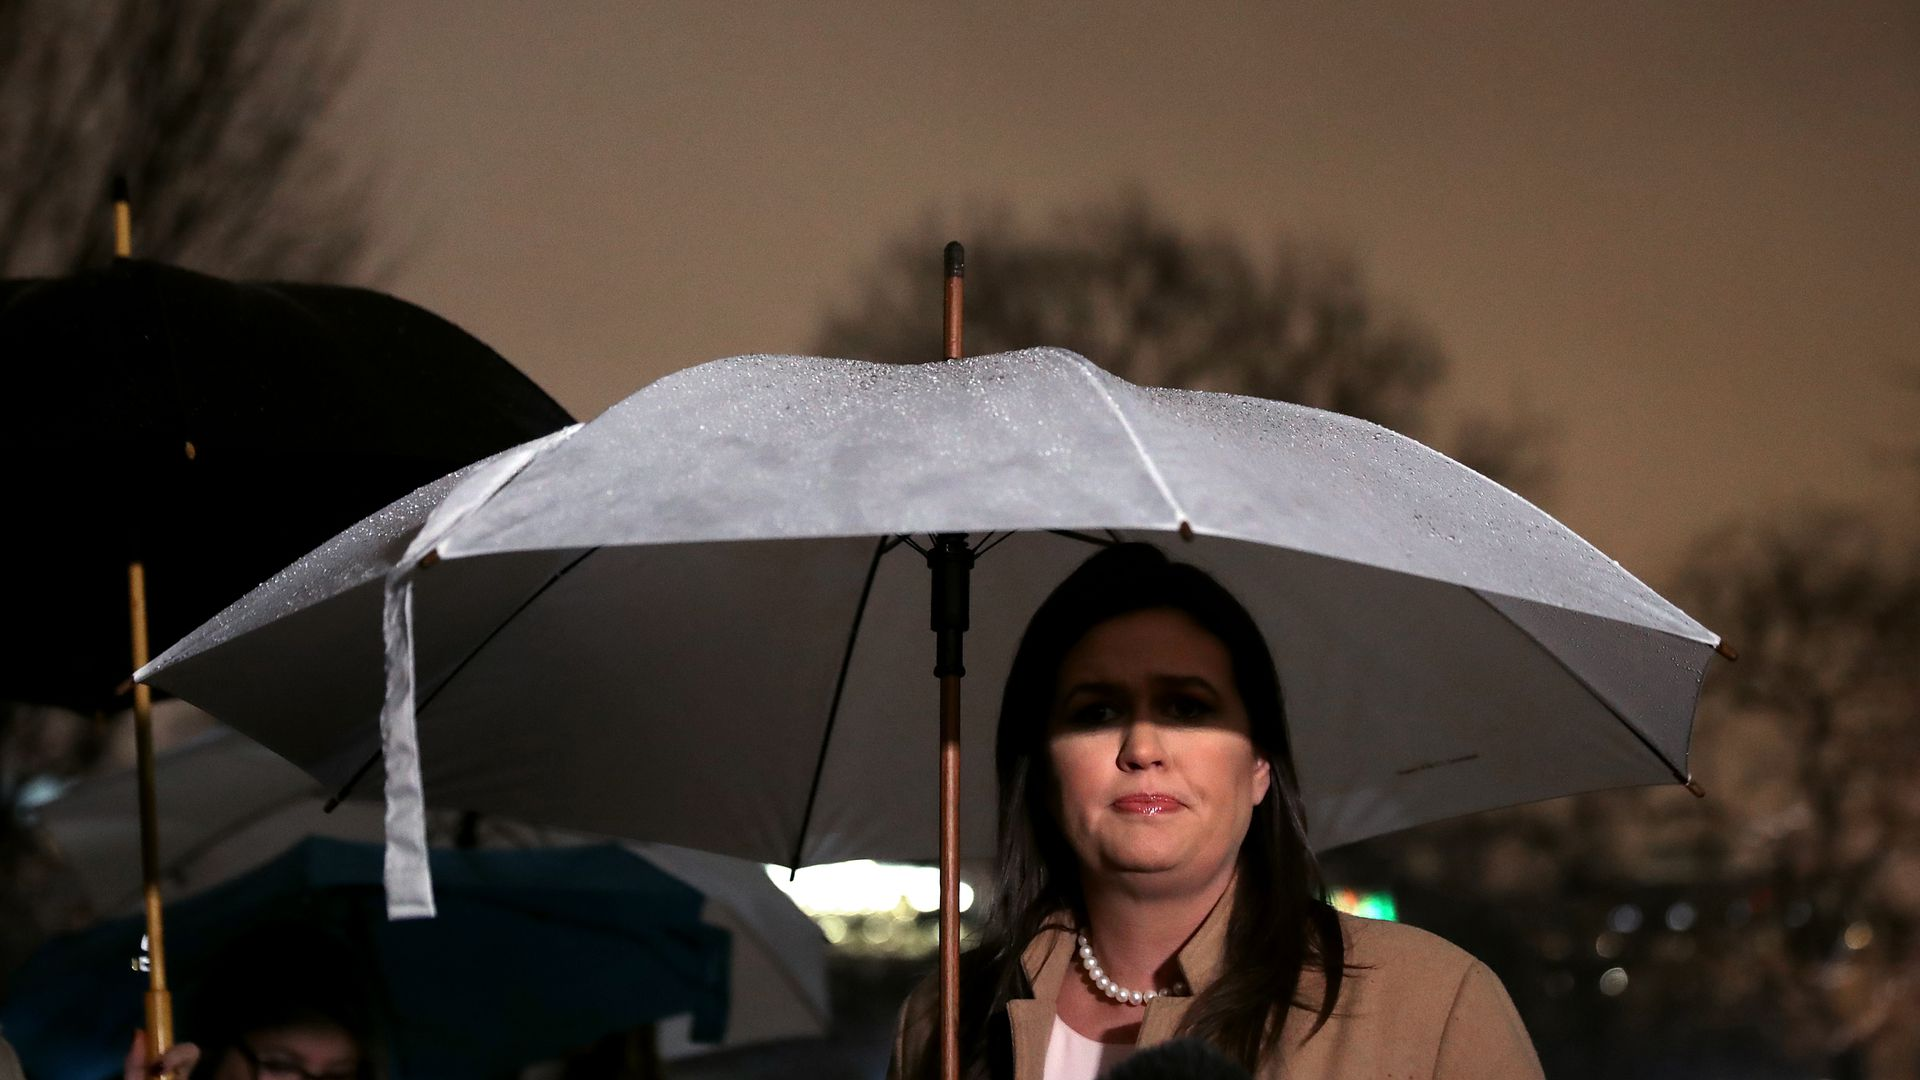 Sarah Sanders holding an umbrella over her head so that it shades part of her eyes